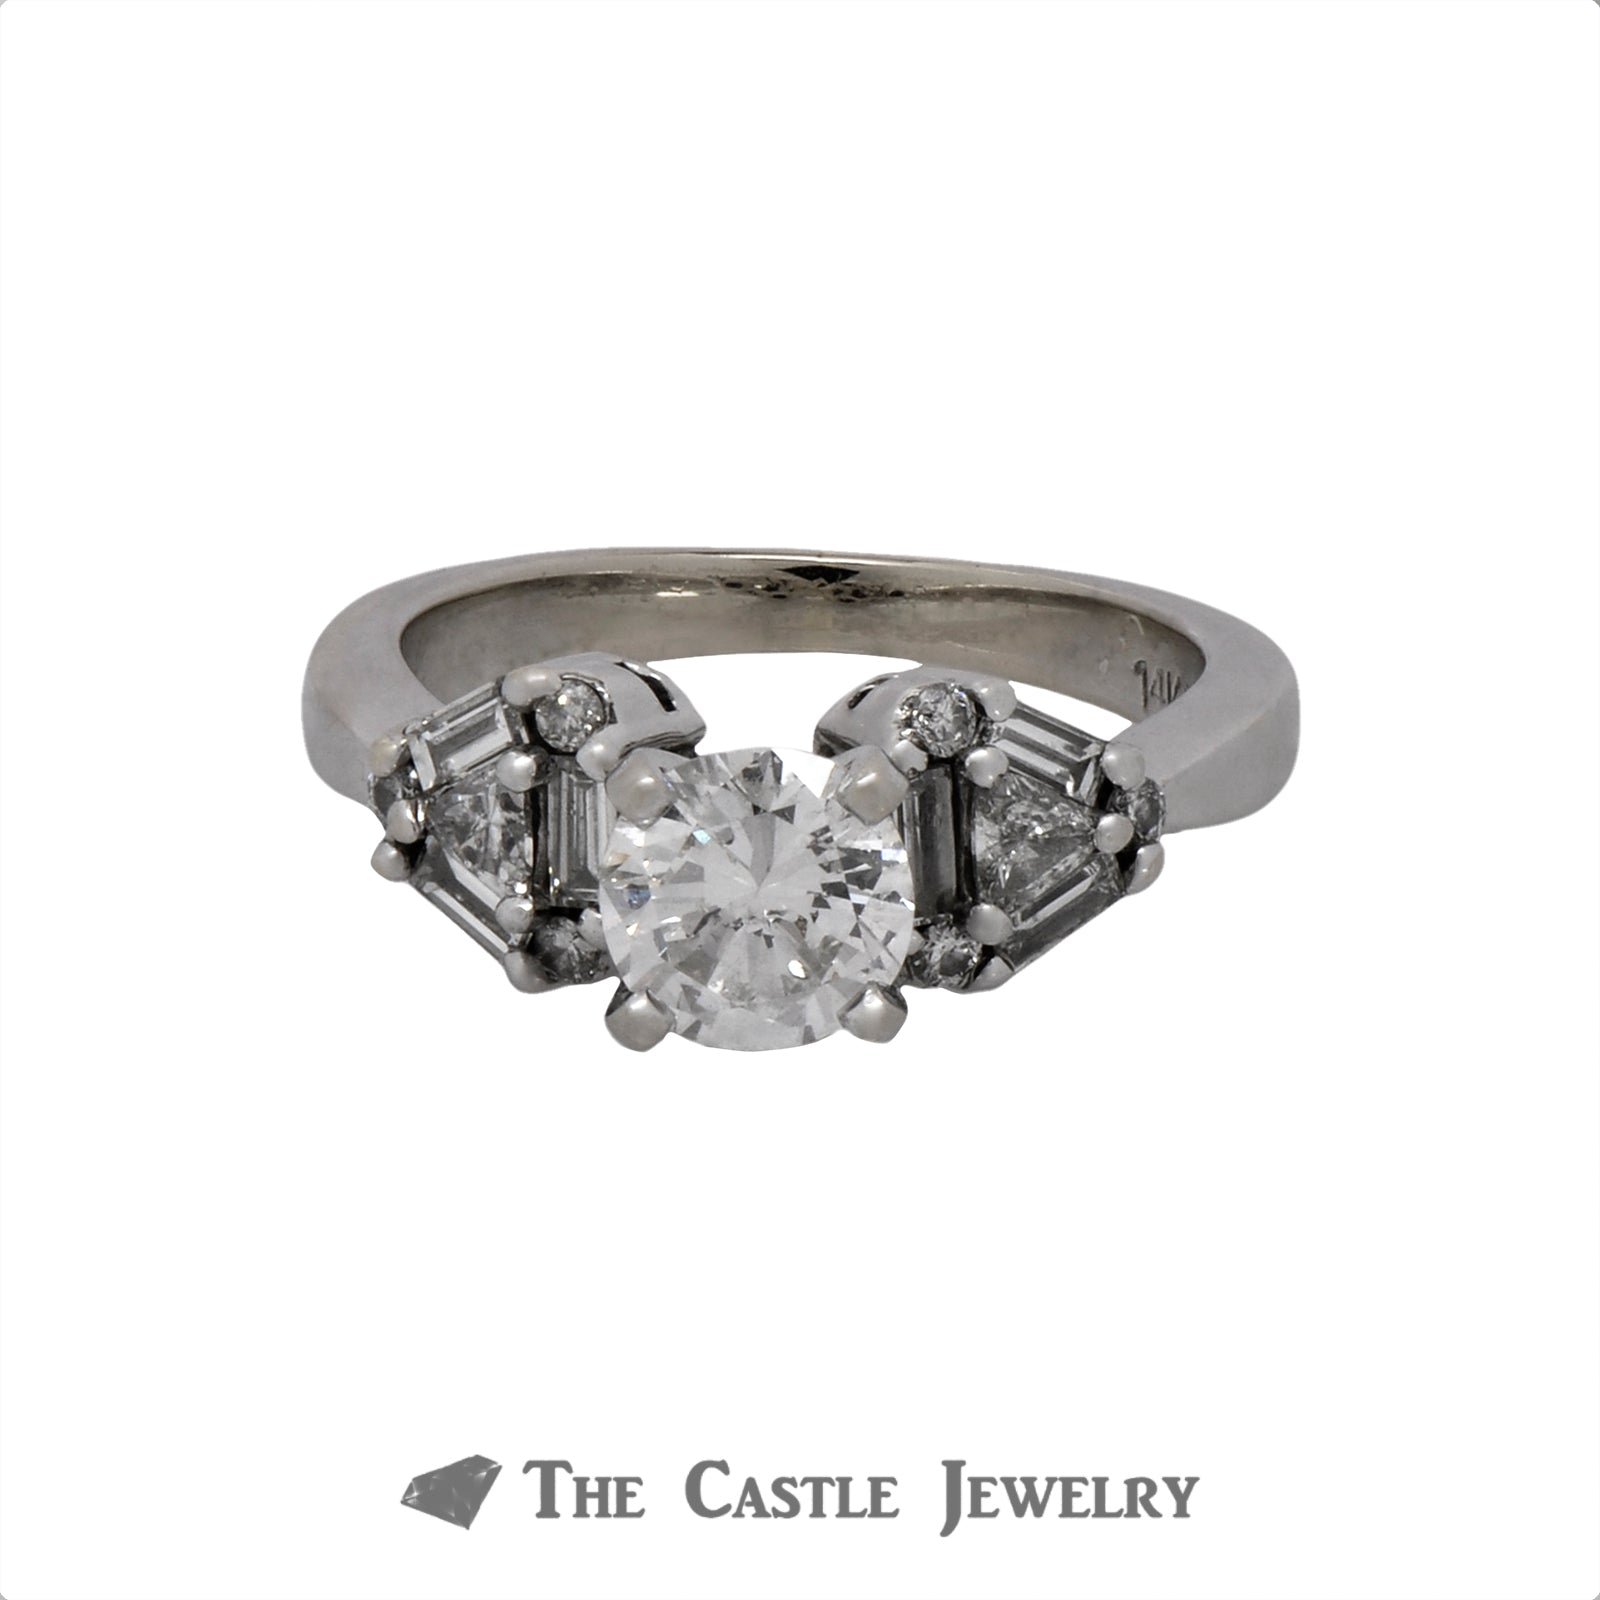 1.25cttw Diamond Engagement Ring with Baguette, Trillion and Round Cut Accents in 14k White Gold